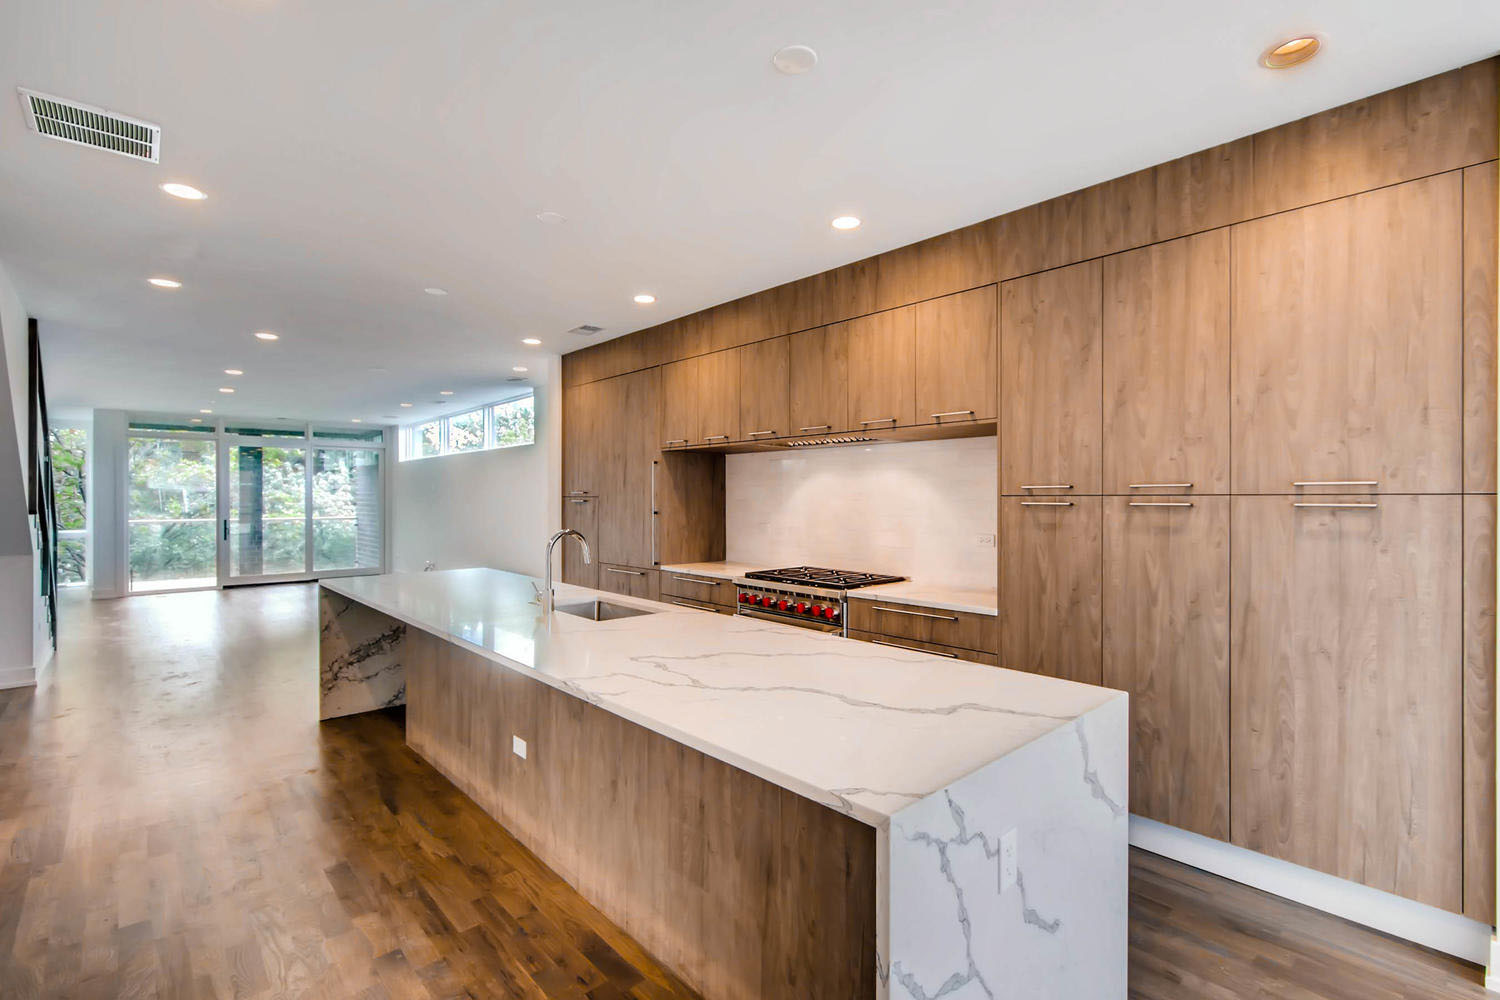 3508 N Reta Ave Chicago IL-large-016-12-Kitchen-1500x1000-72dpi-v2.jpg